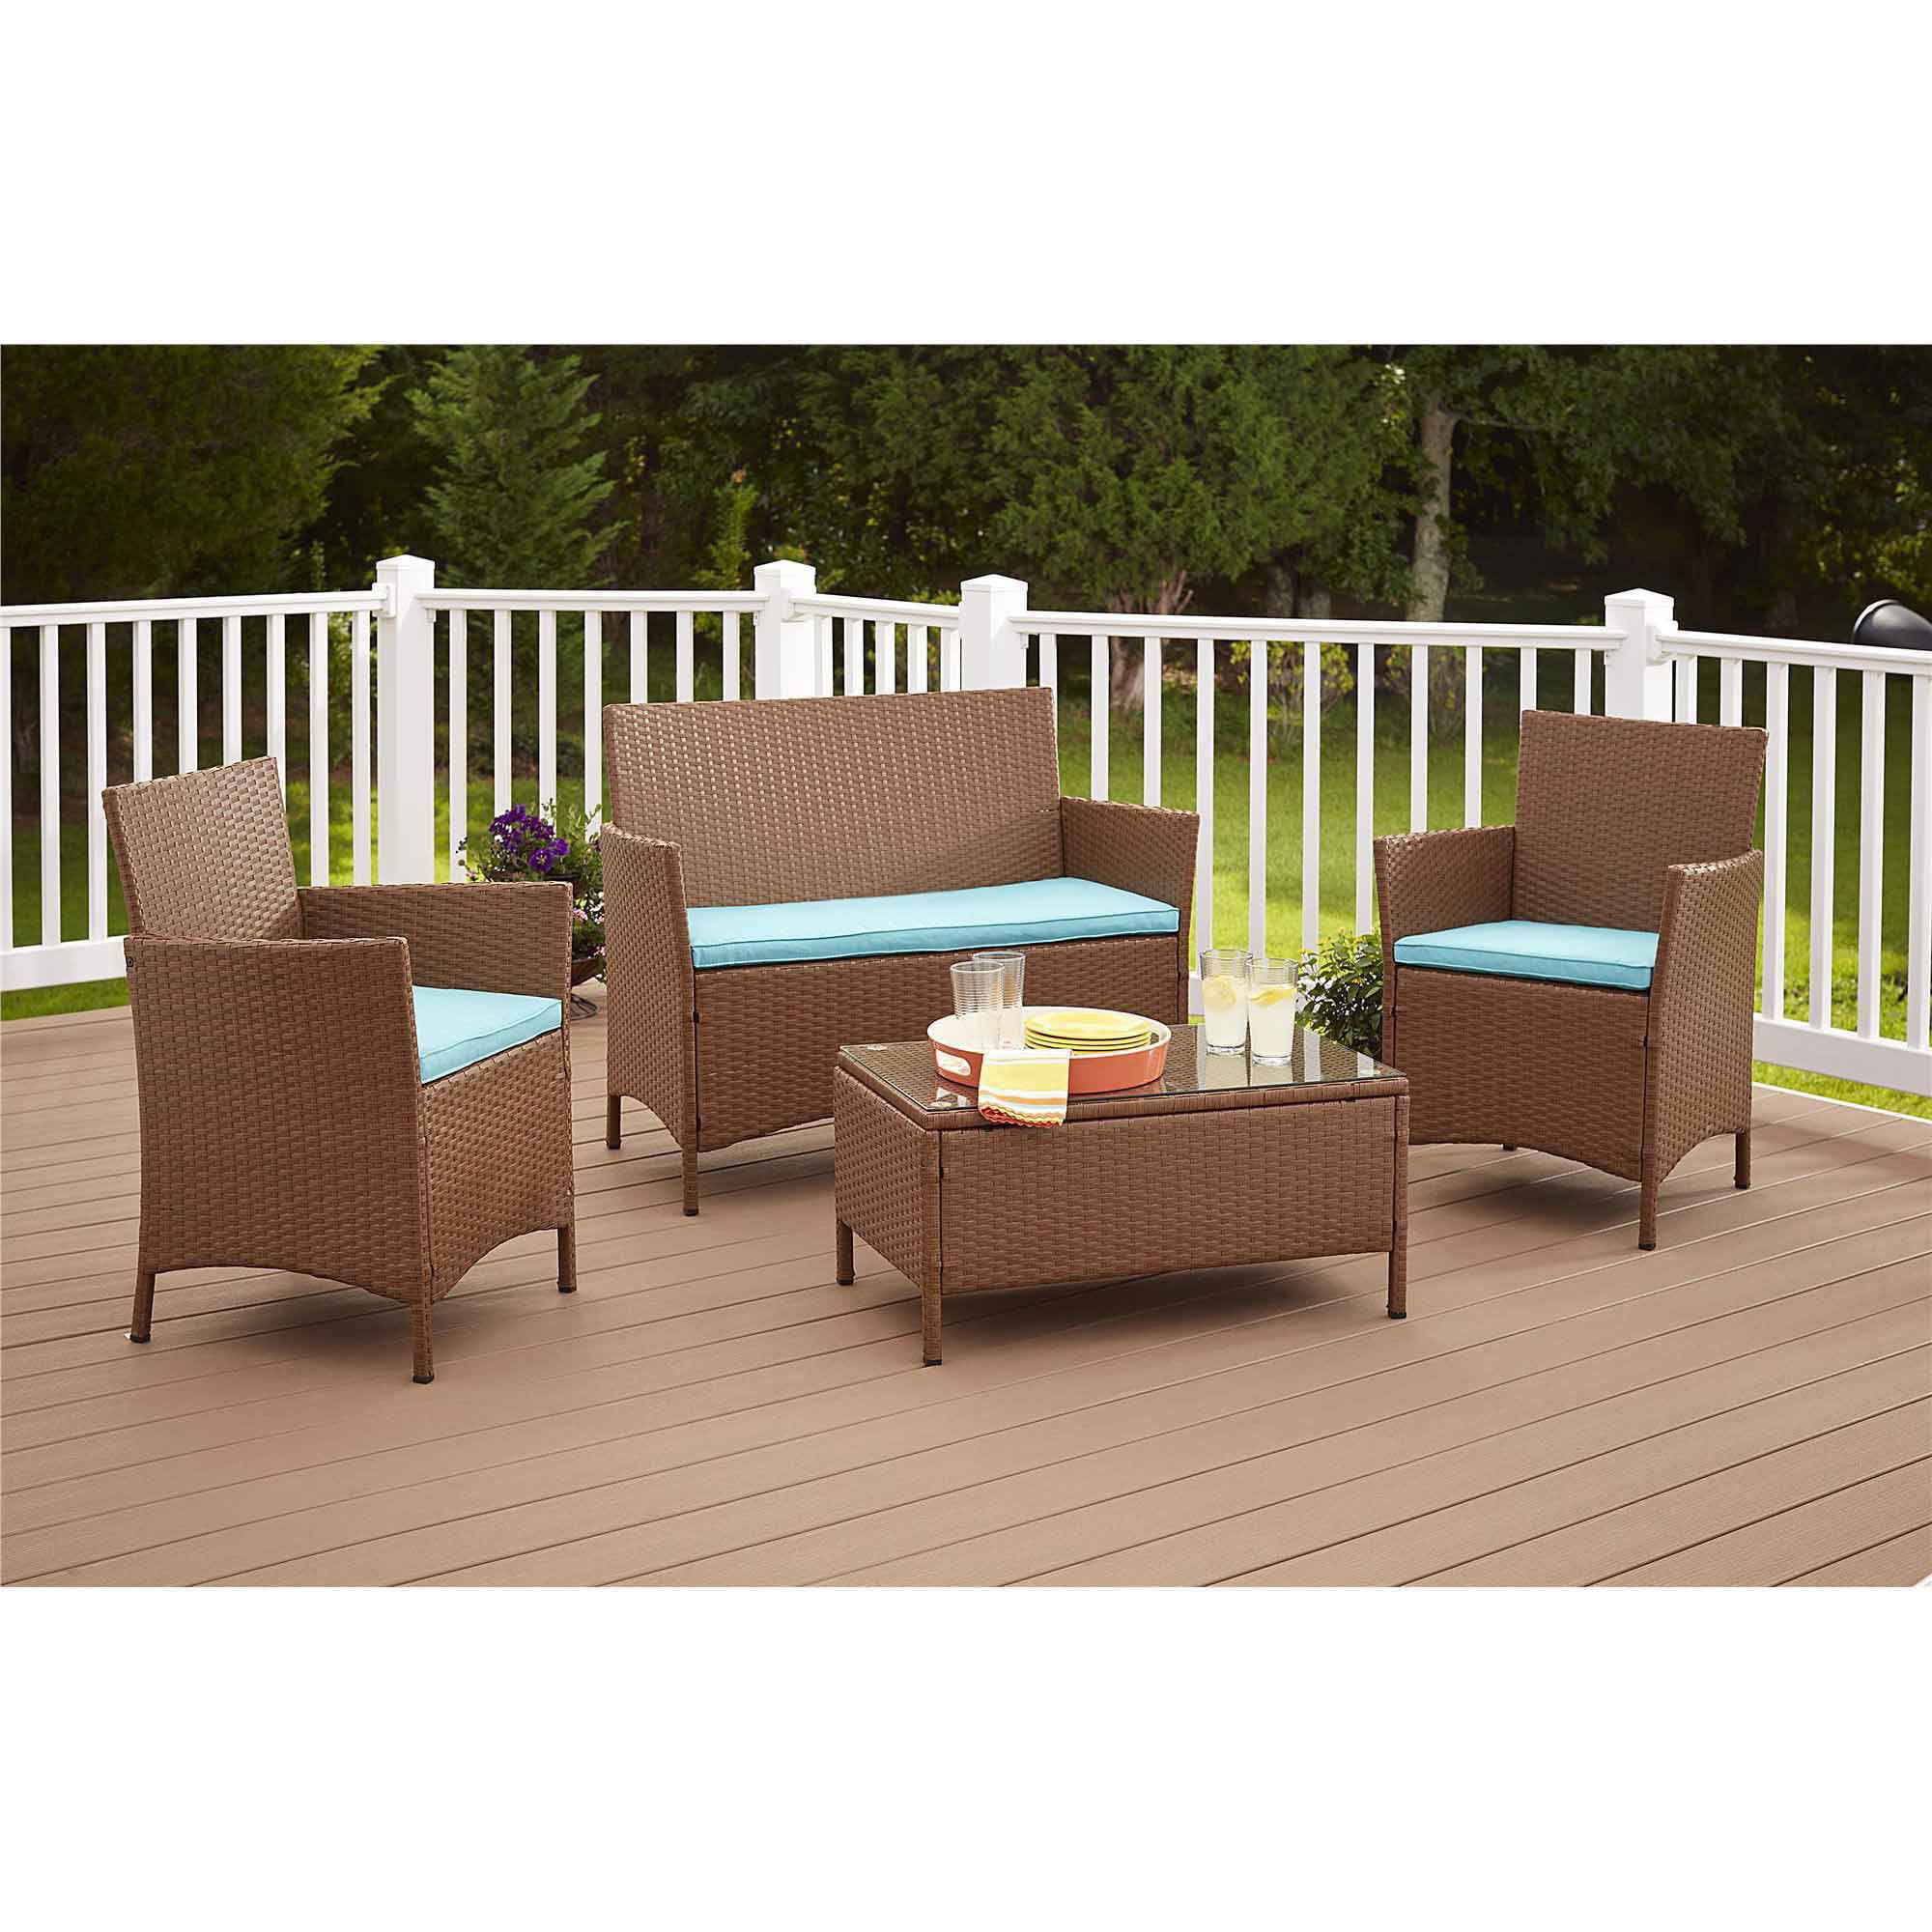 best choice products 7pc outdoor patio garden furniture wicker rattan sofa set sectional brown walmartcom - Garden Furniture 4 U Ltd